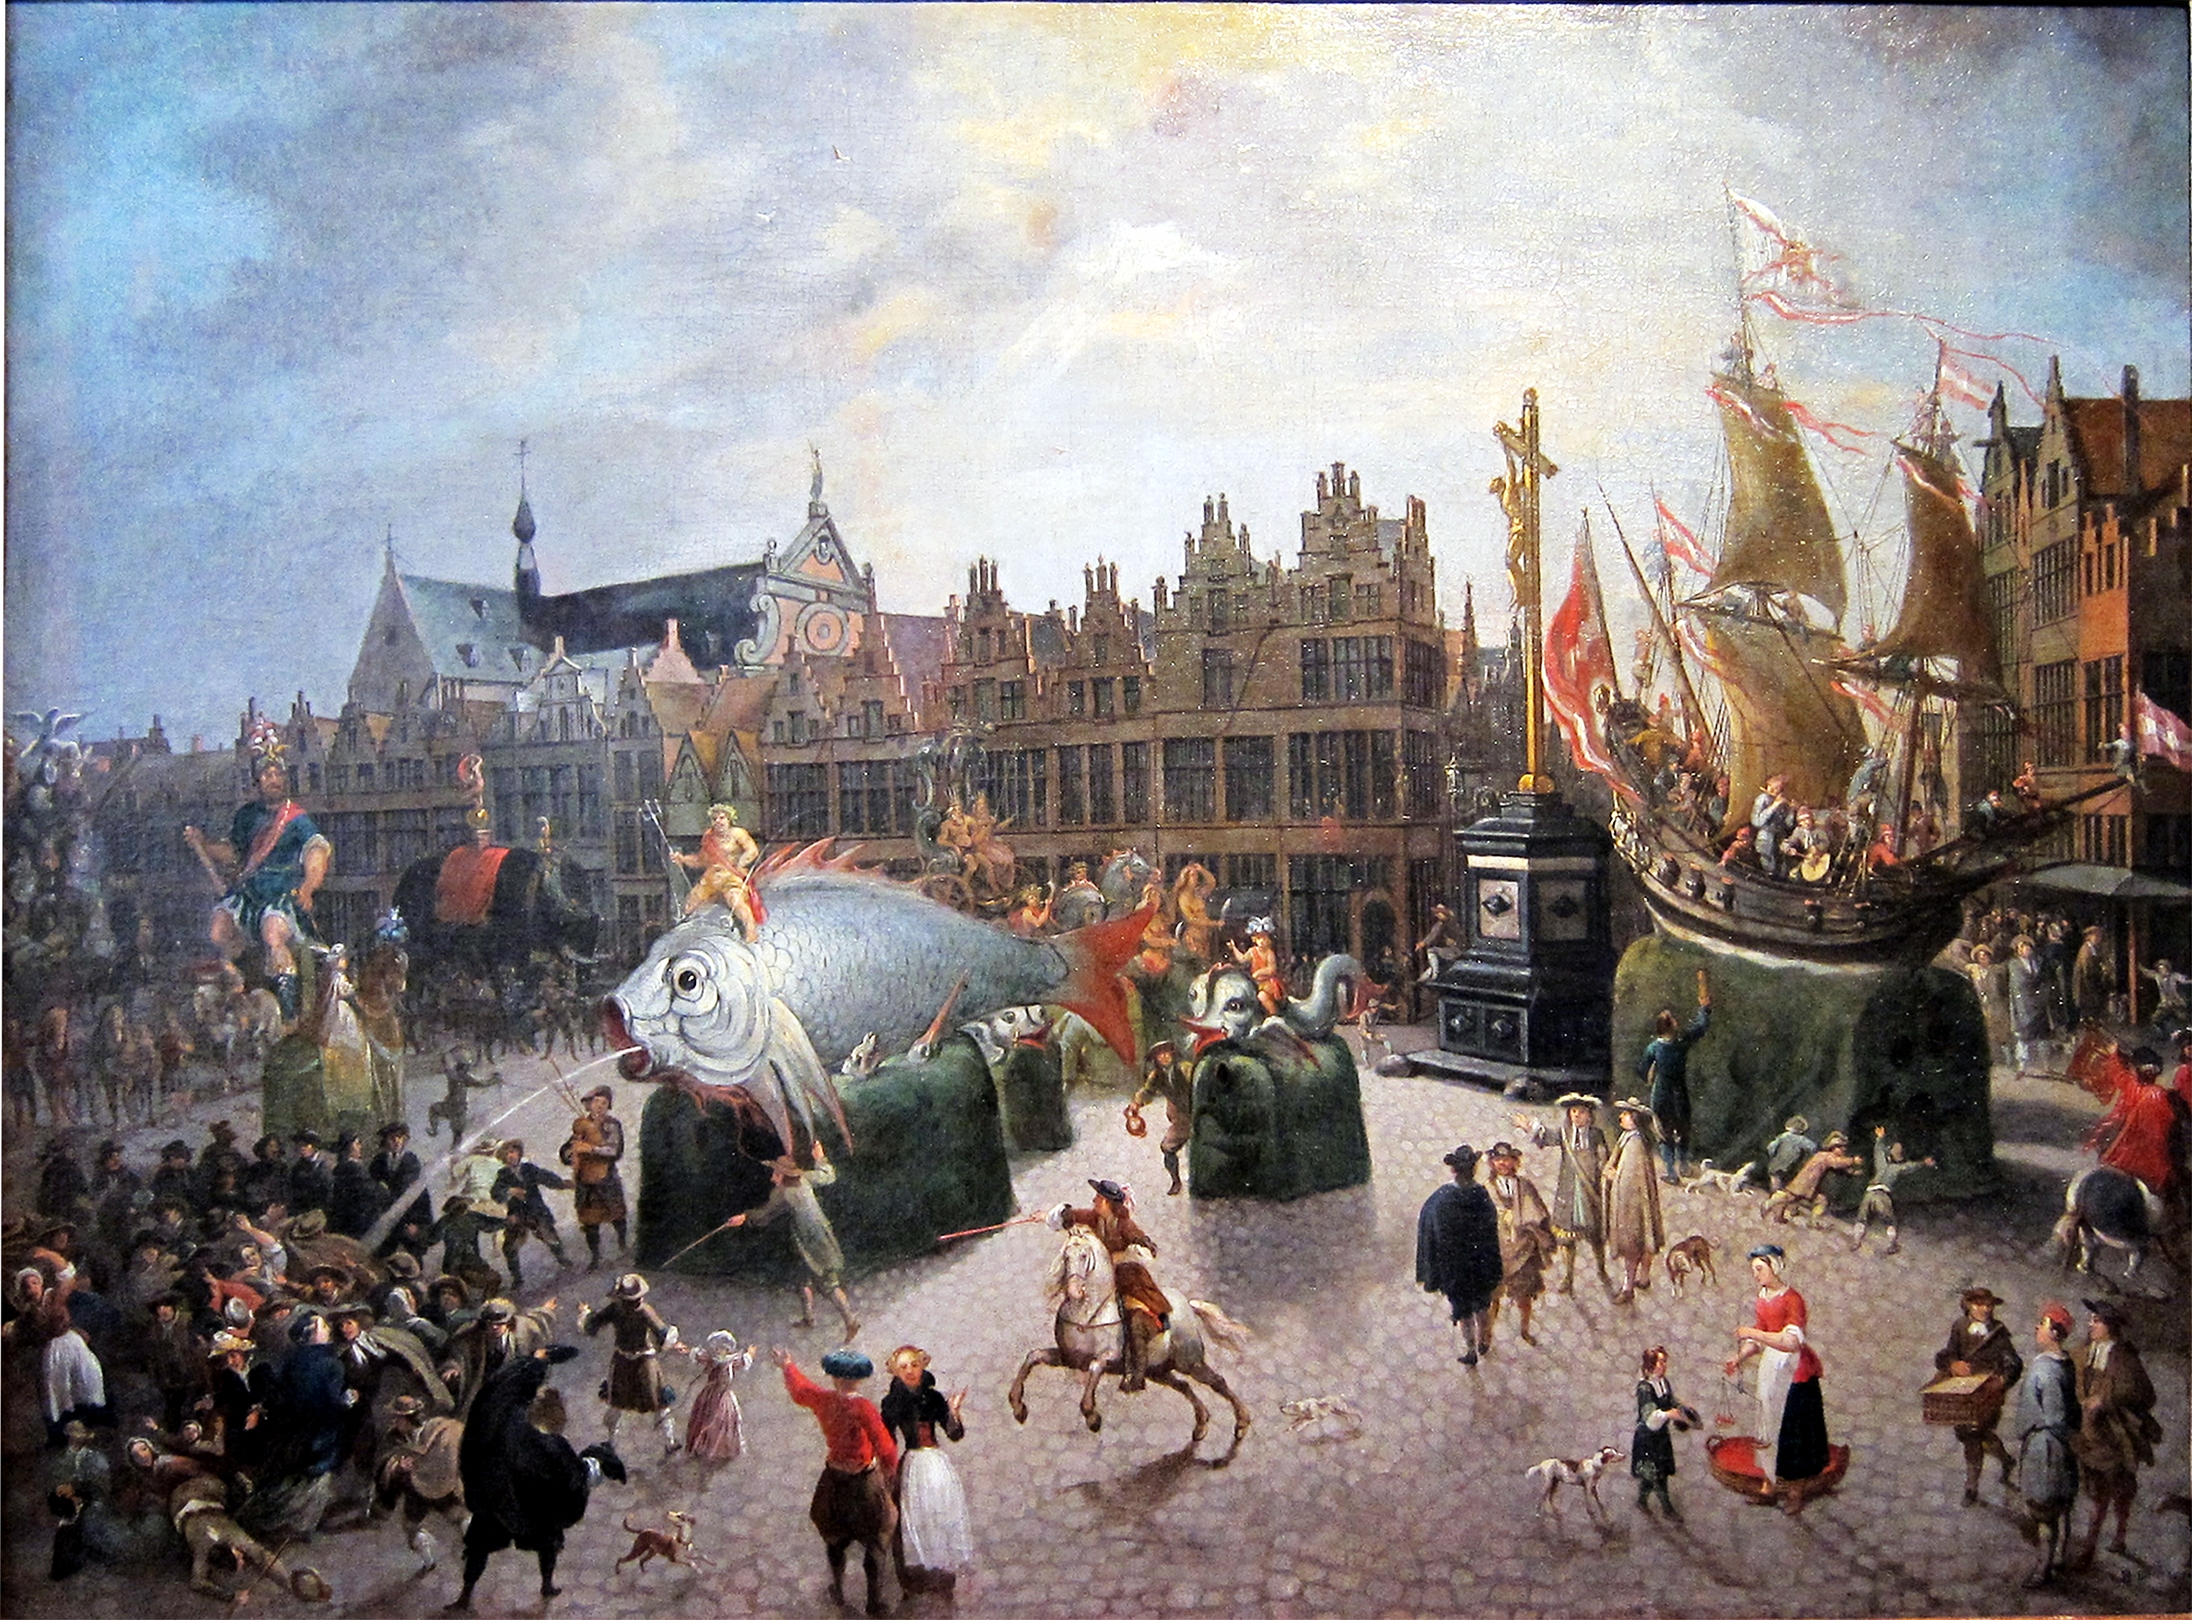 Erasmus de Bie. Carnival Floats on the Meir Square in Antwerp. 1670